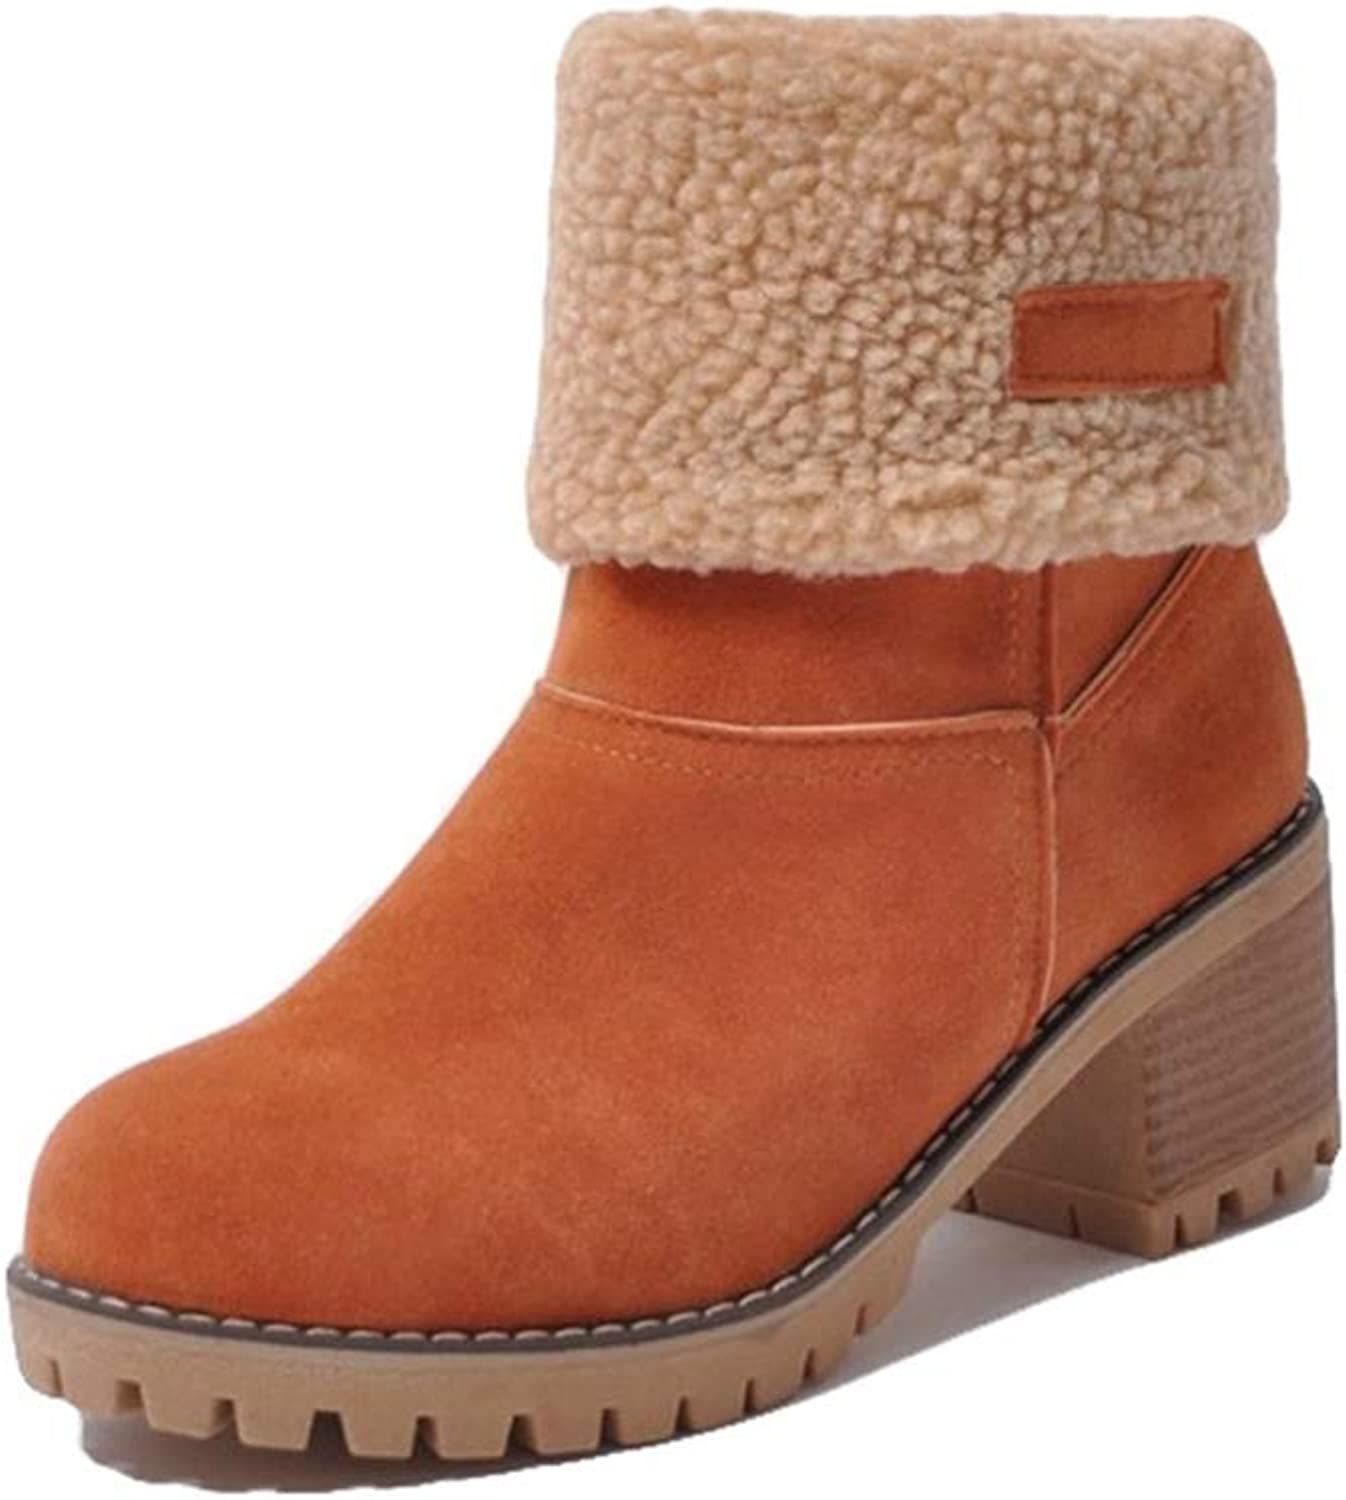 c2572f57c93c0 August Jim Womens - High Winter Warm Short Ankle Boots for Women ...